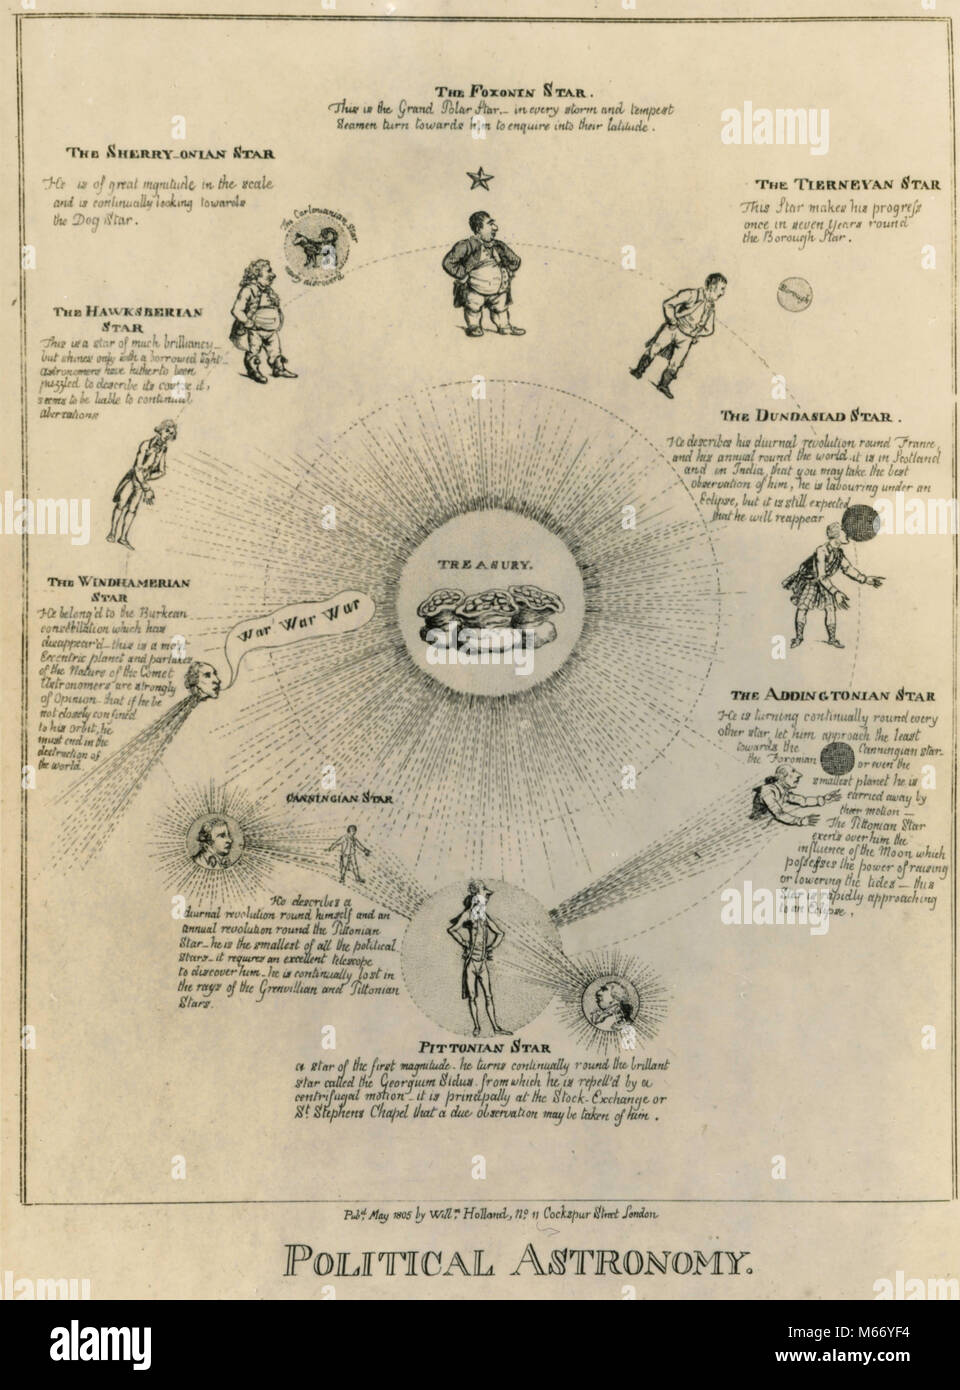 Cartoon of Political Astronomy by Gilray, UK 1805 - Stock Image